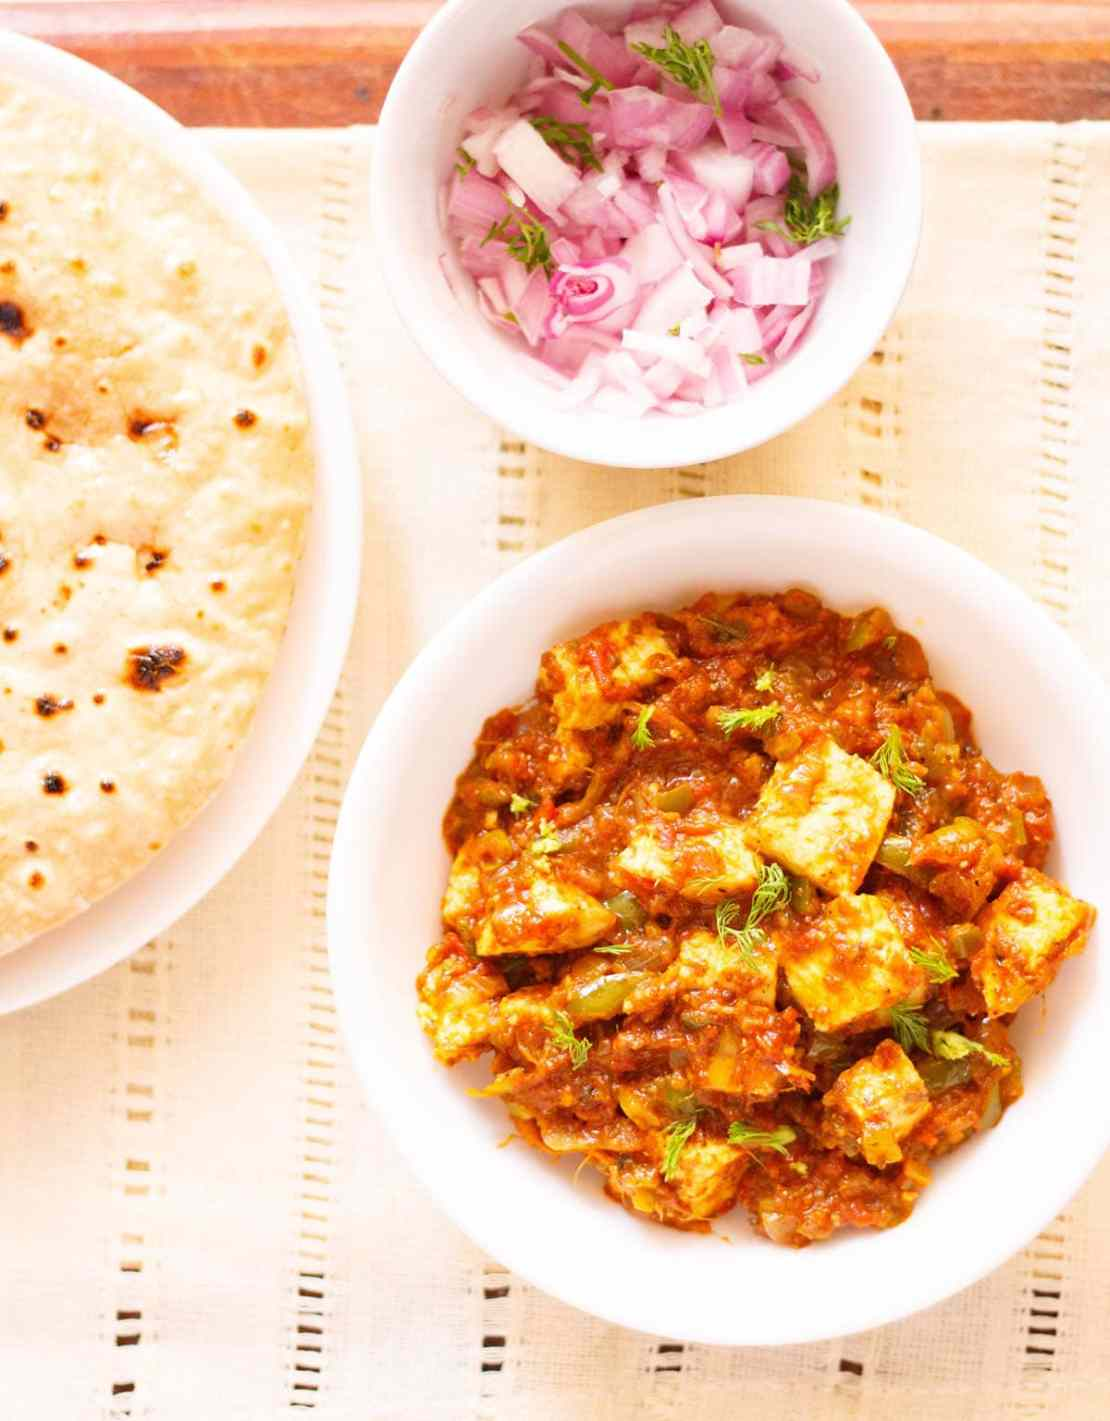 overhead shot of tawa paneer with coriander leaves garnish in a white bowl on a cream linen with a side plate of roti and a small side bowl of chopped red onions and coriander leaves